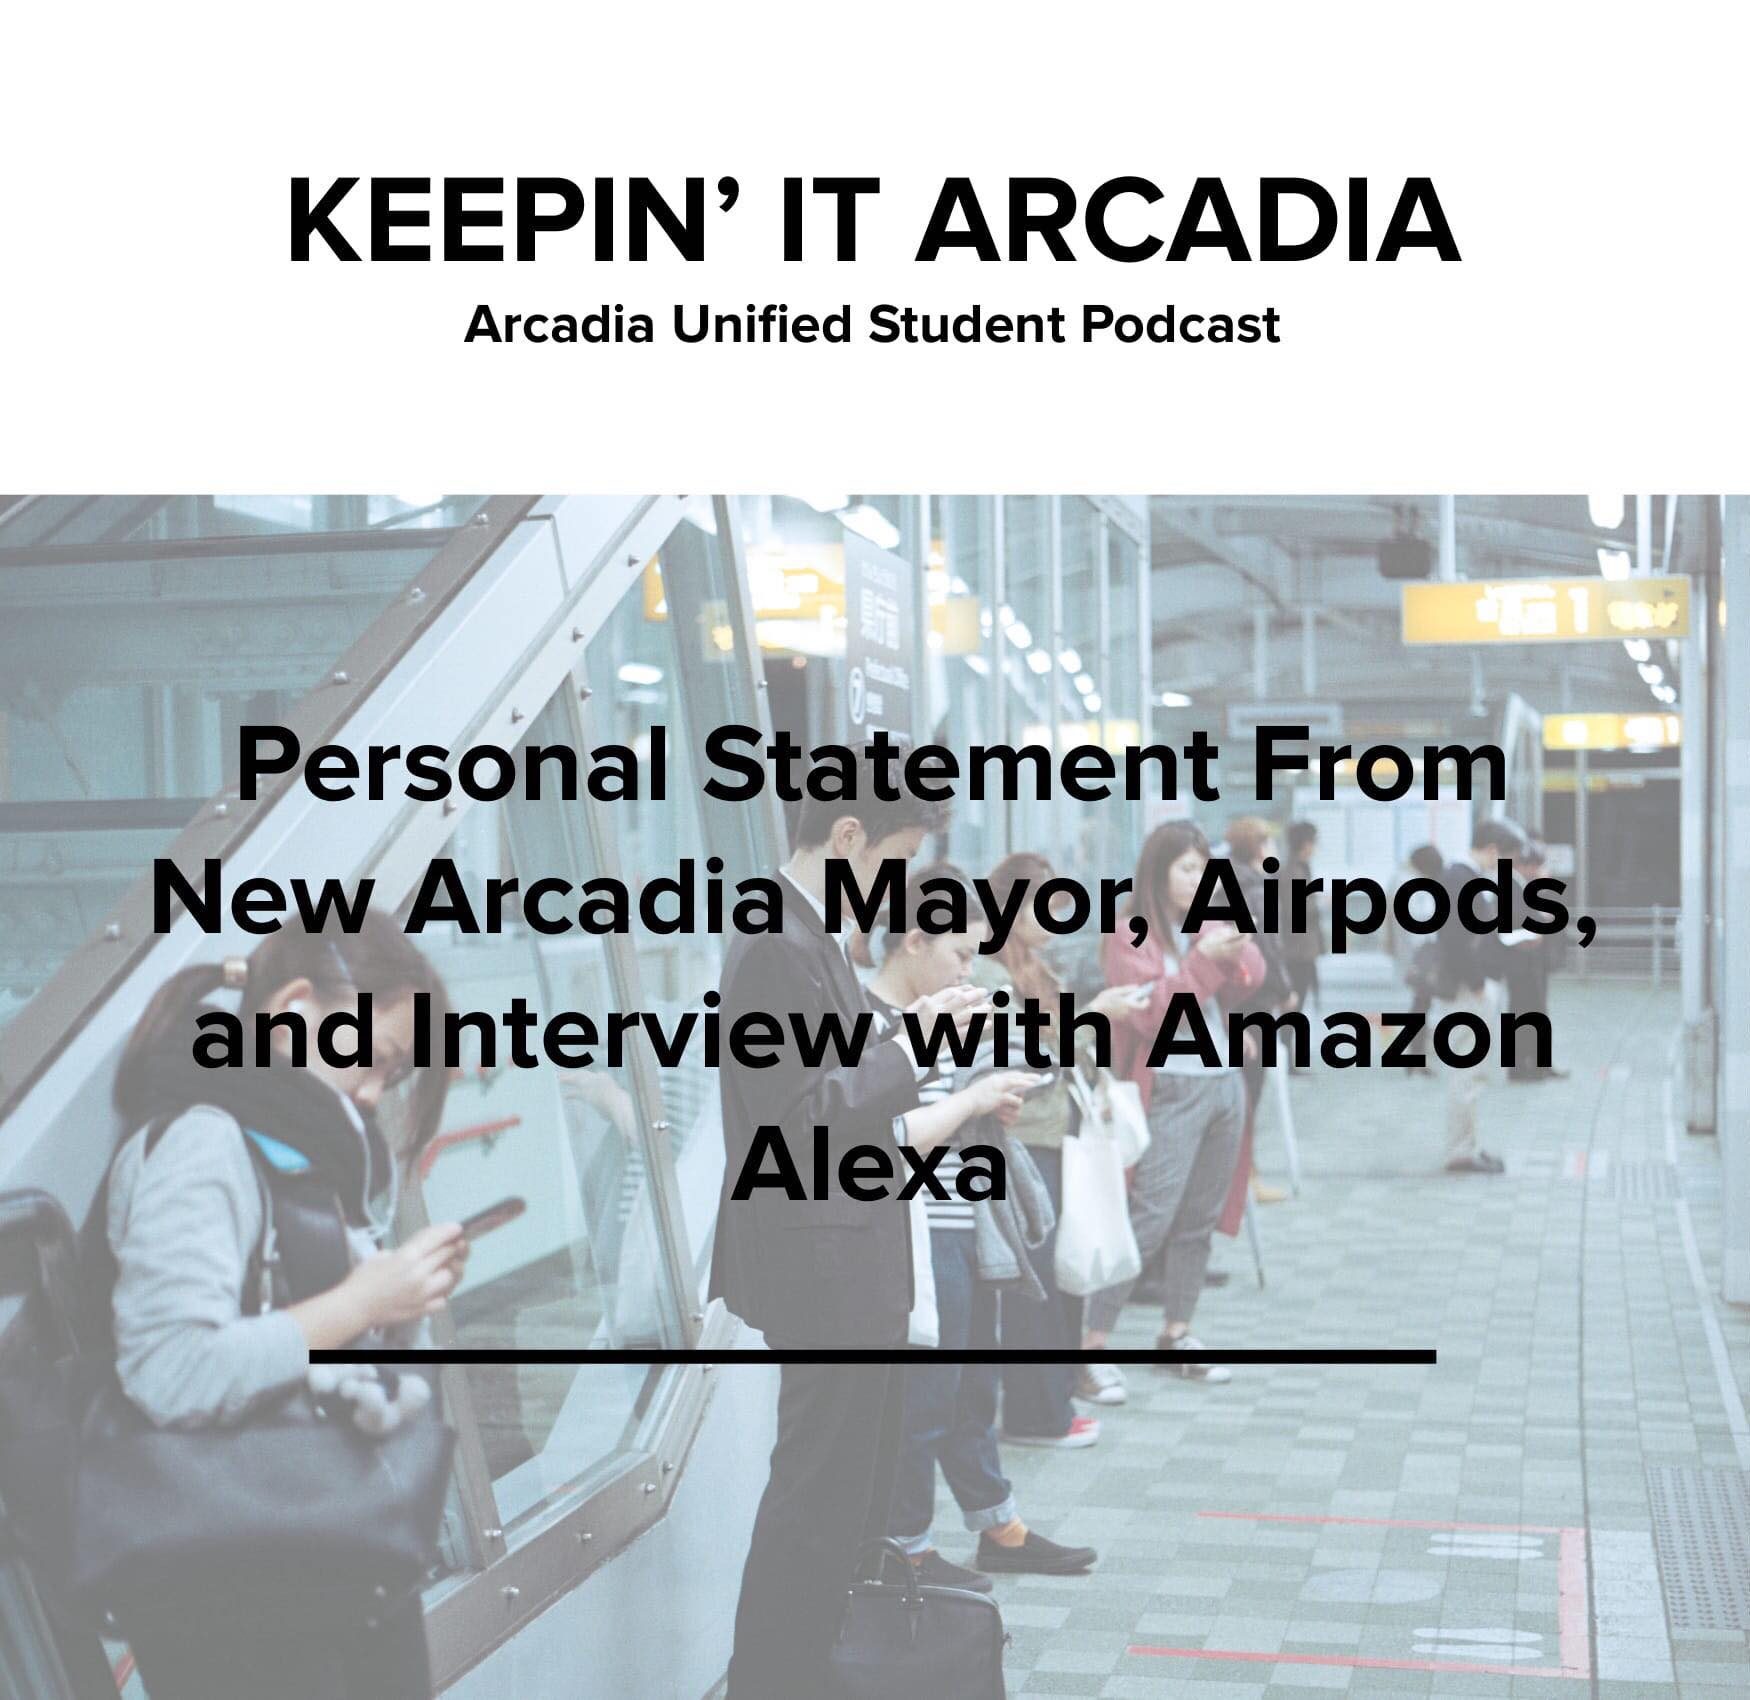 S2 #26 Personal Statement from New Arcadia Mayor, Airpods, and Interview with Amazon Alexa!